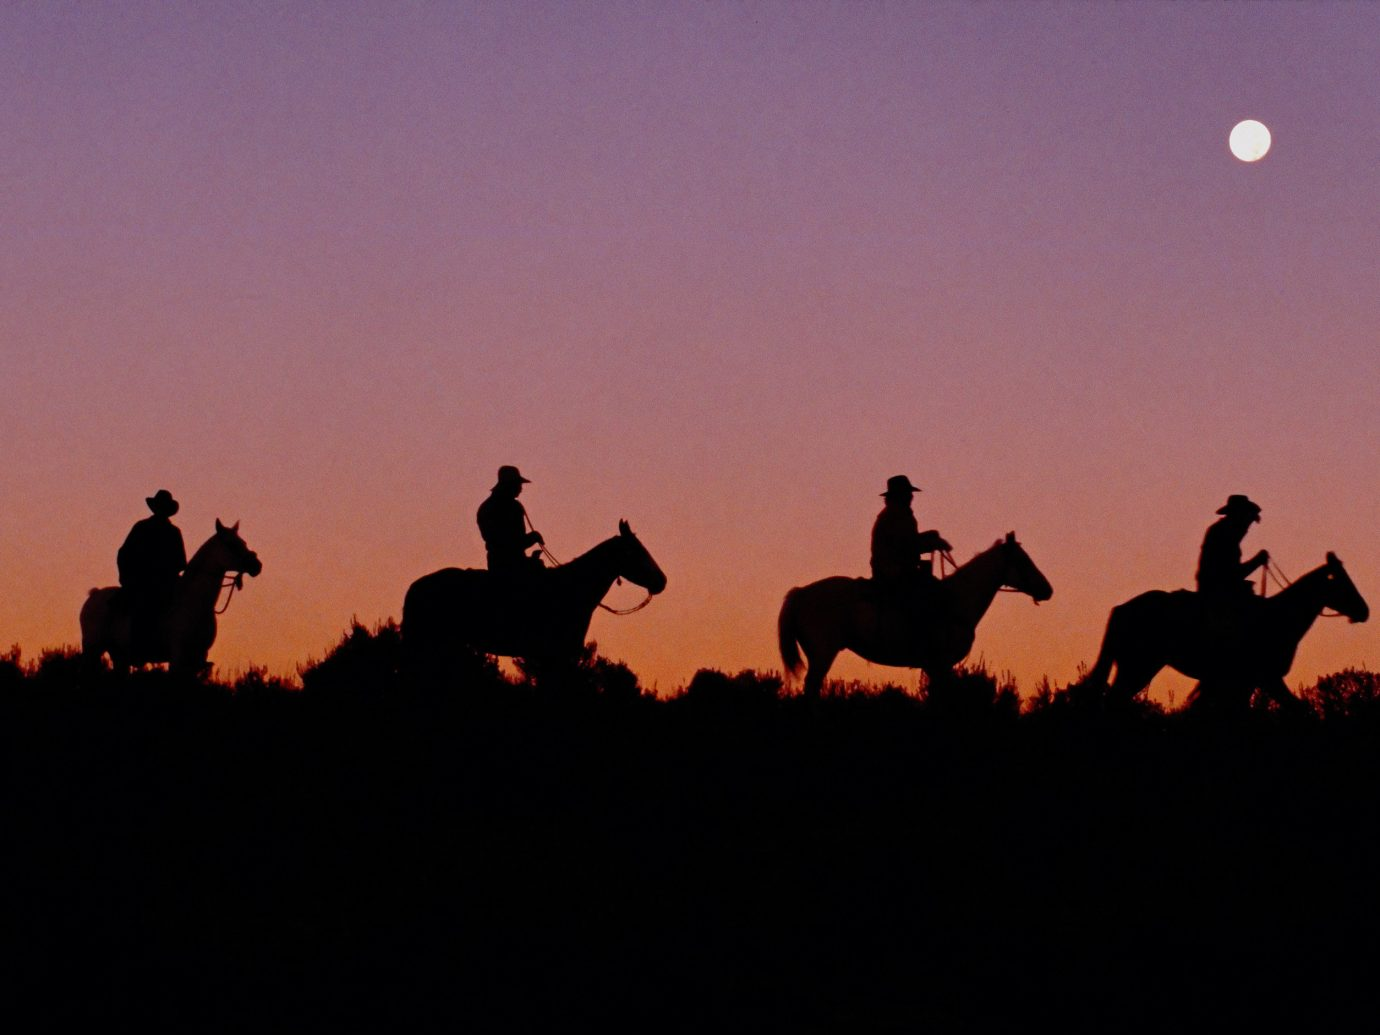 Adventure sky outdoor horse like mammal dark silhouette horse sunrise Sunset evening ecoregion light mustang horse dusk dawn fun landscape plain field image aircraft